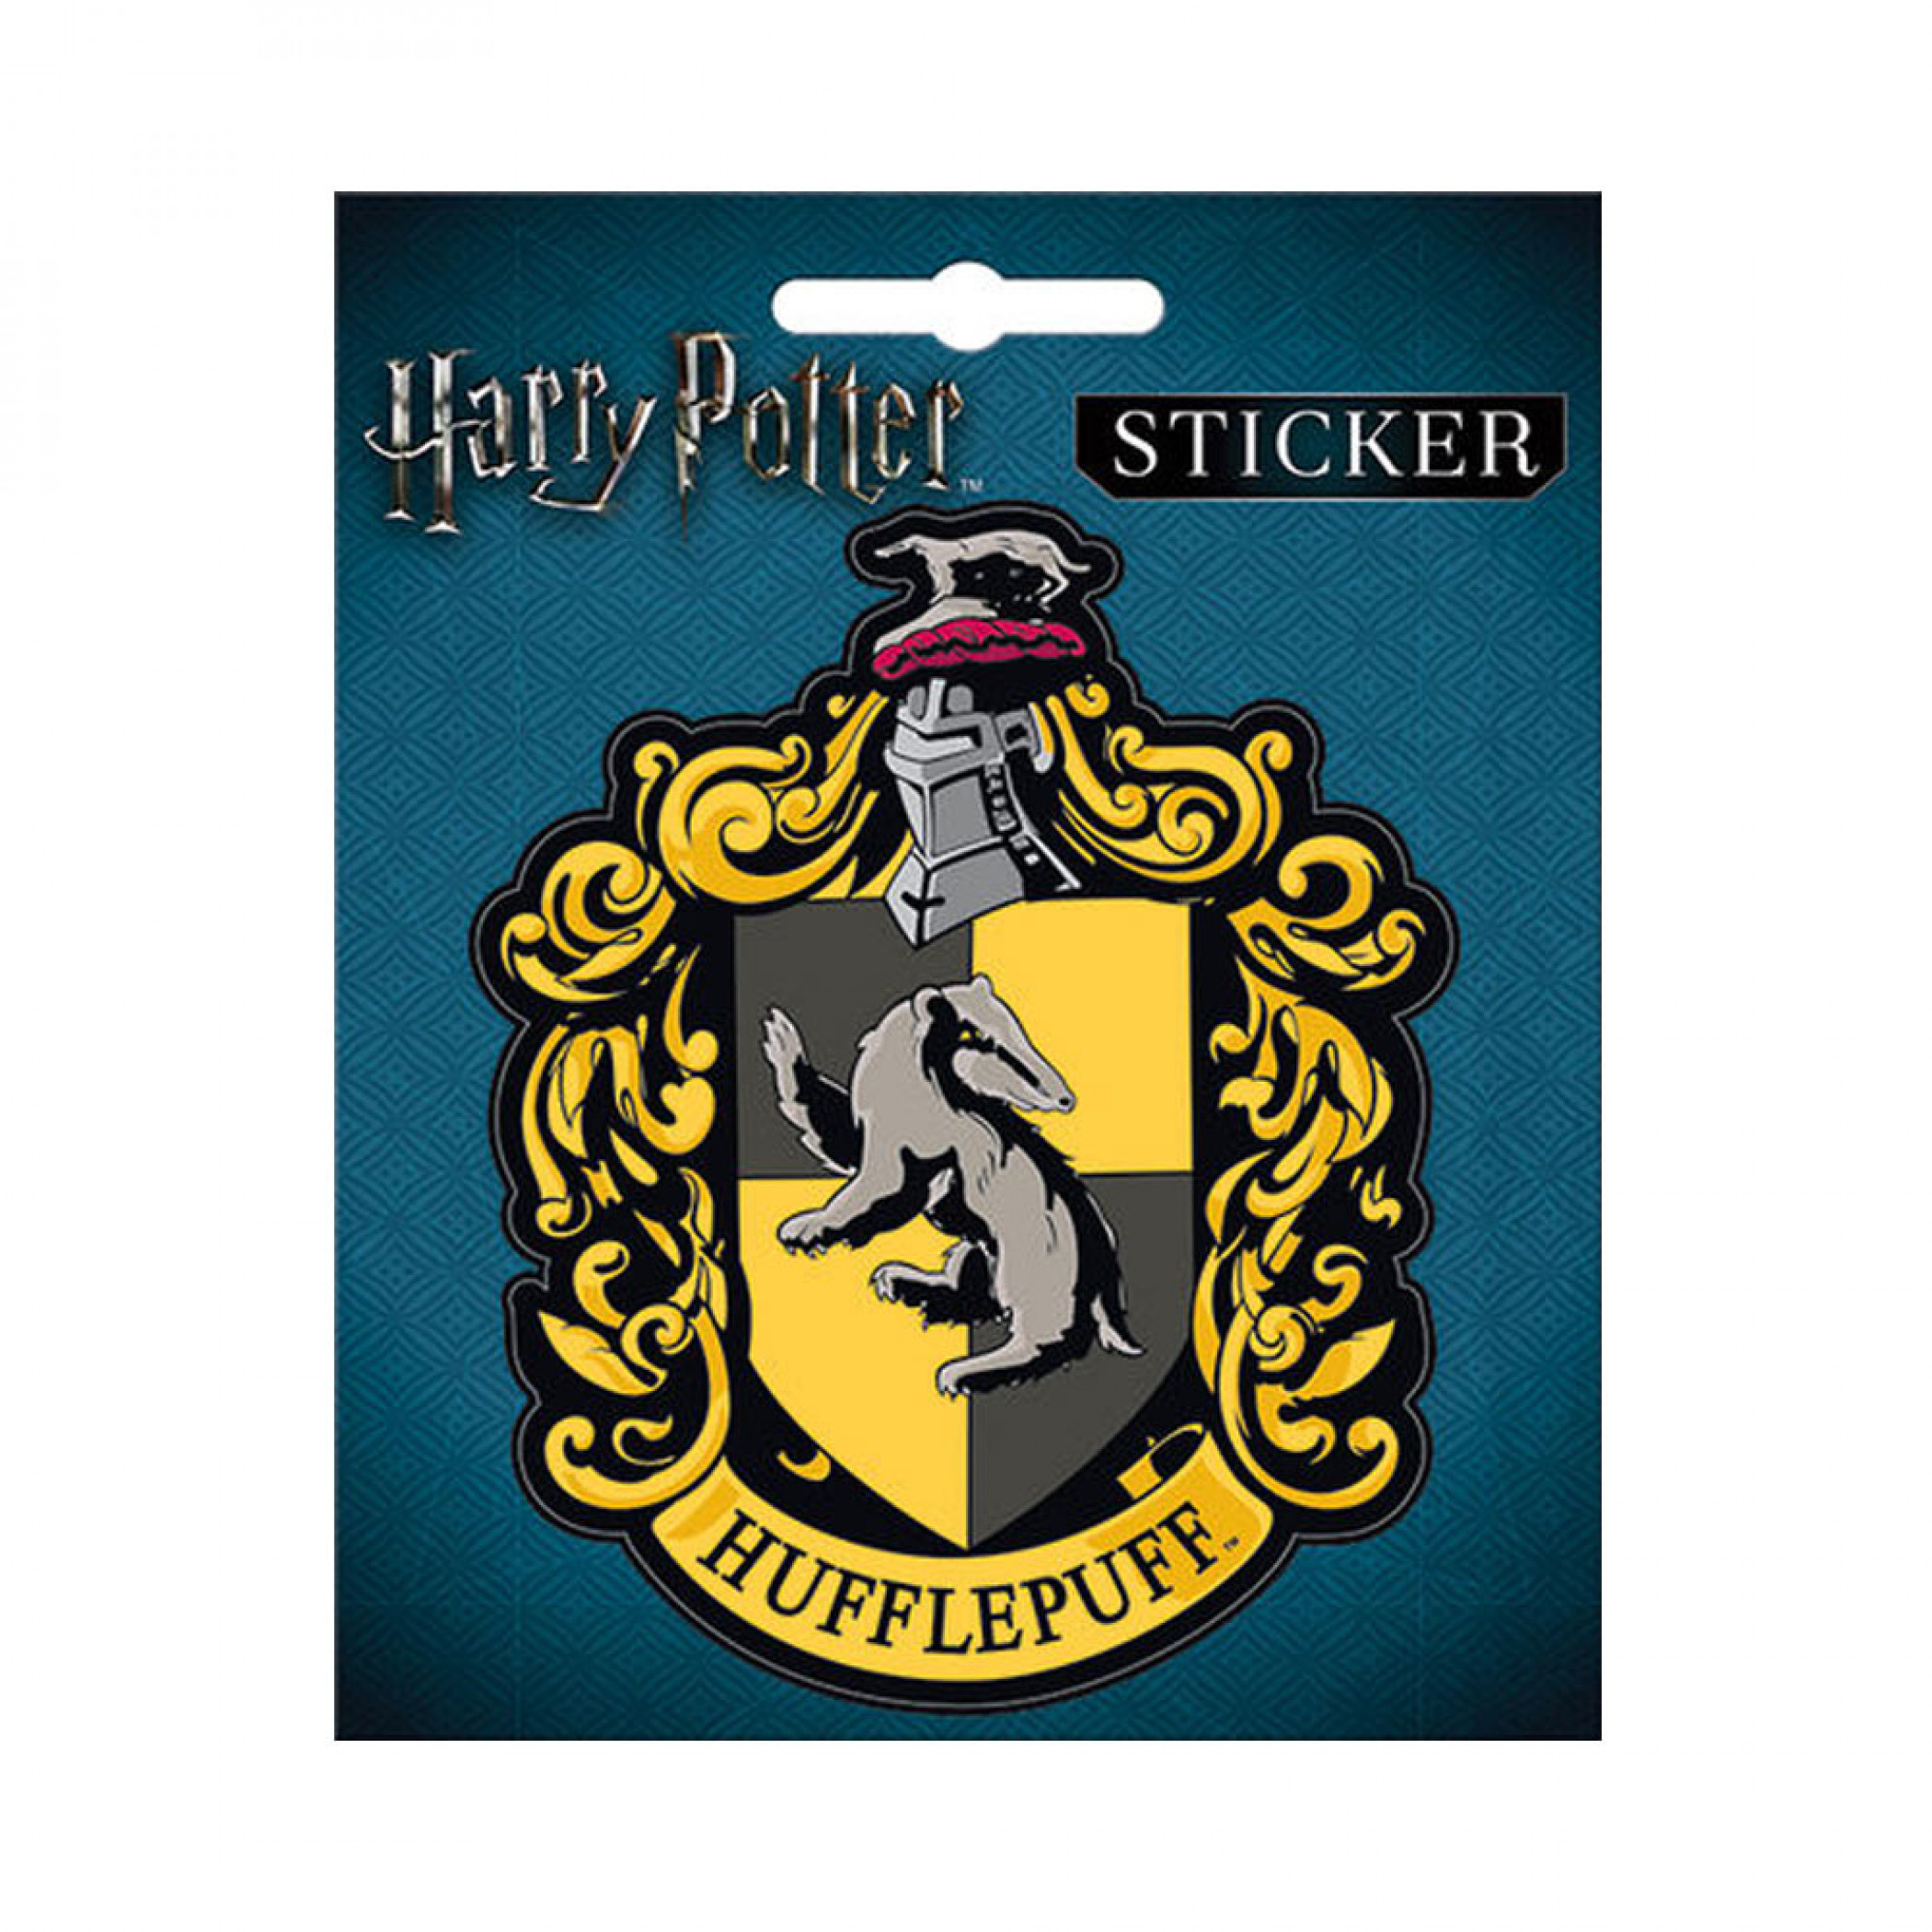 Harry Potter Hufflepuff Sticker